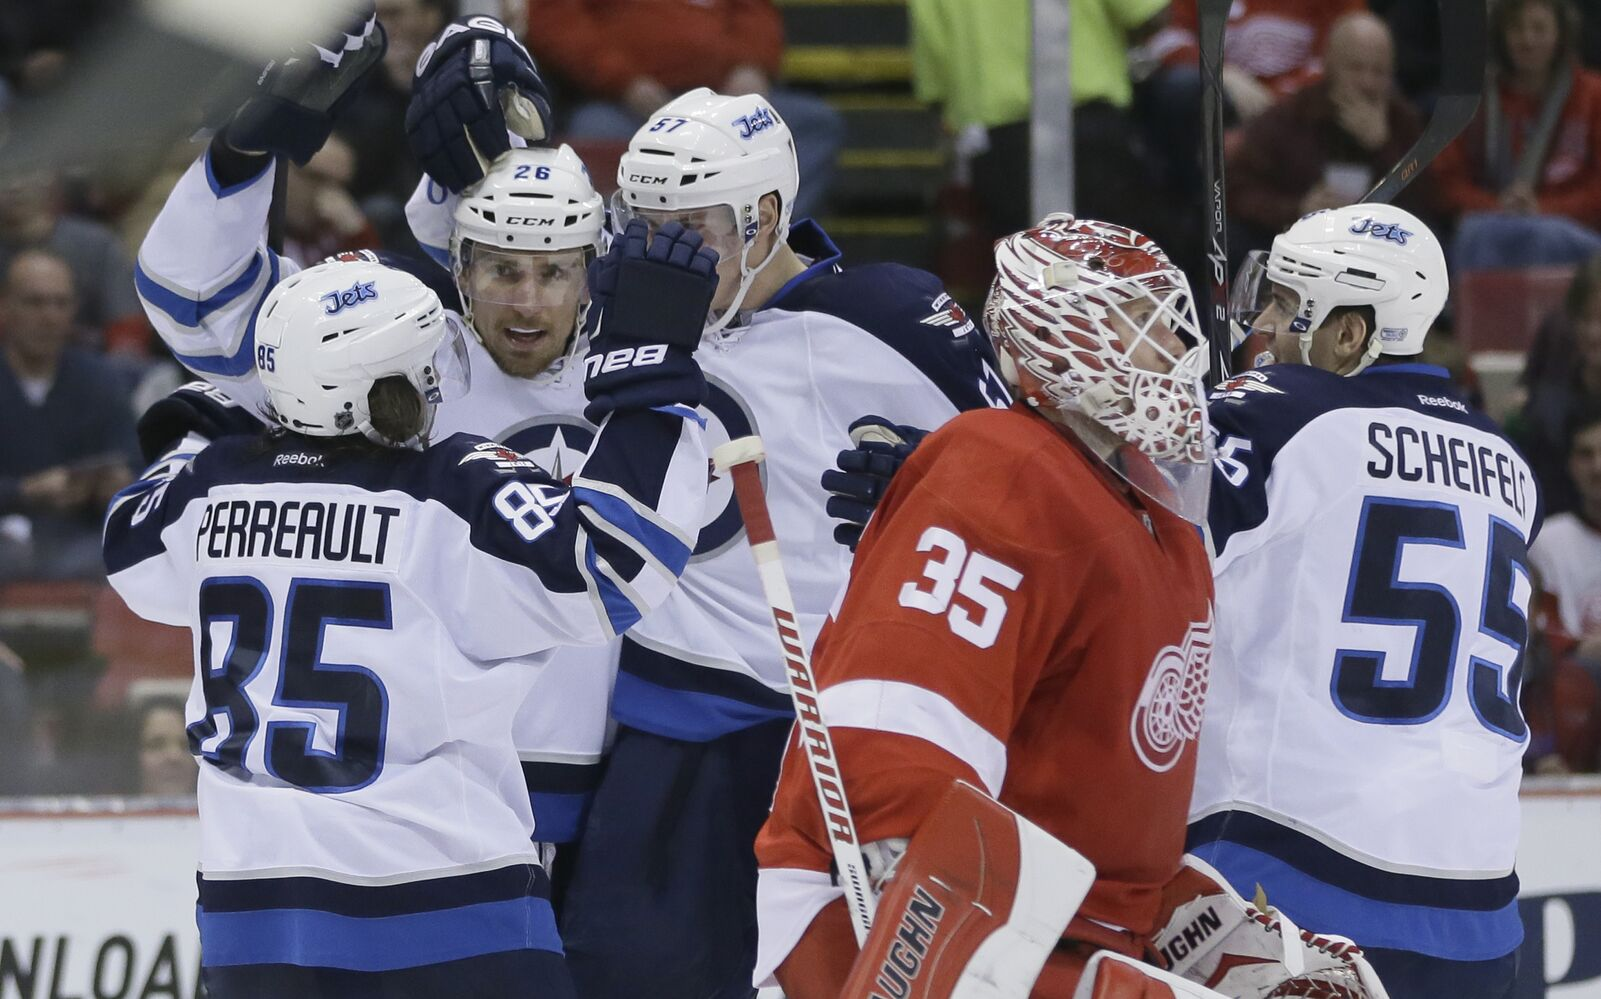 The Jets celebrate after Blake Wheeler's second-period goal. (Carlos Osorio / The Associated Press)